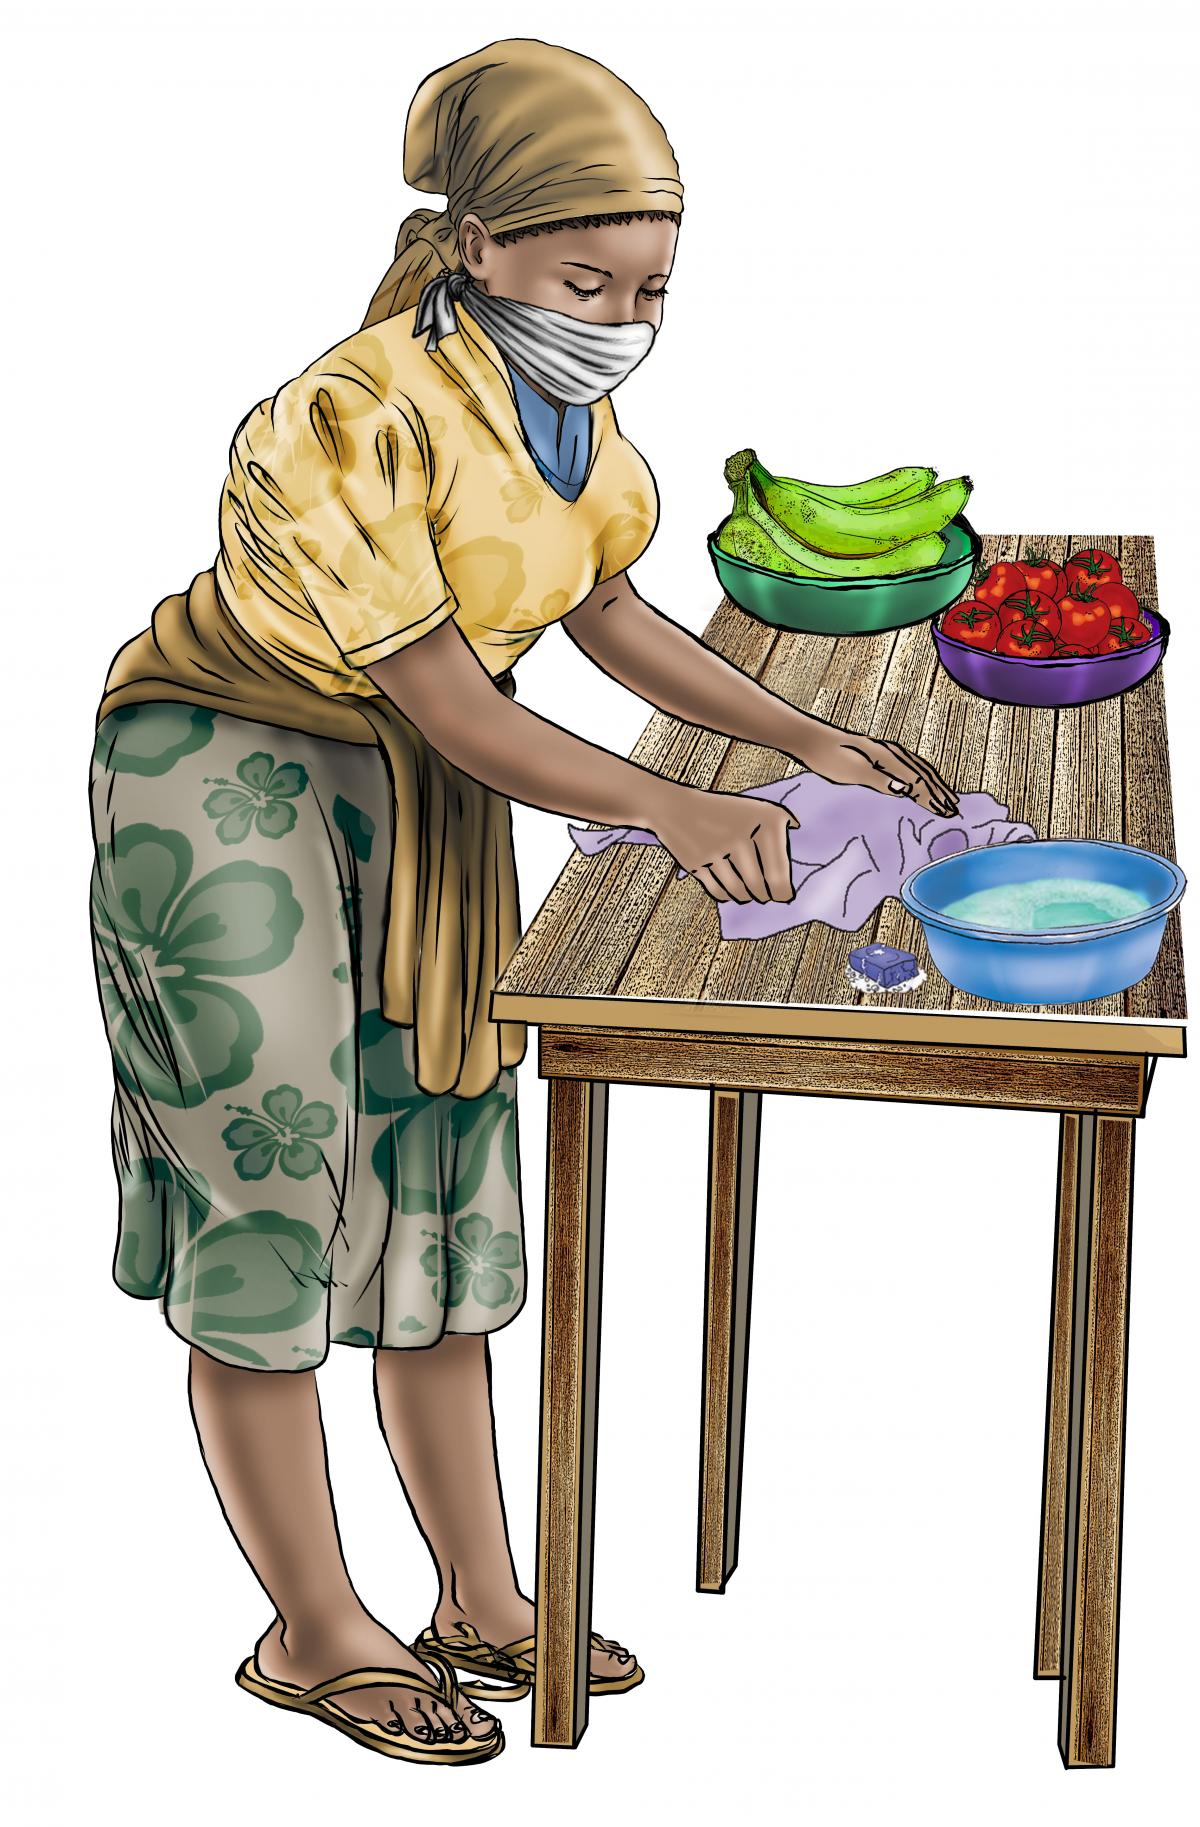 Food practices - Keep a clean area for food preparation - 01 - COVID